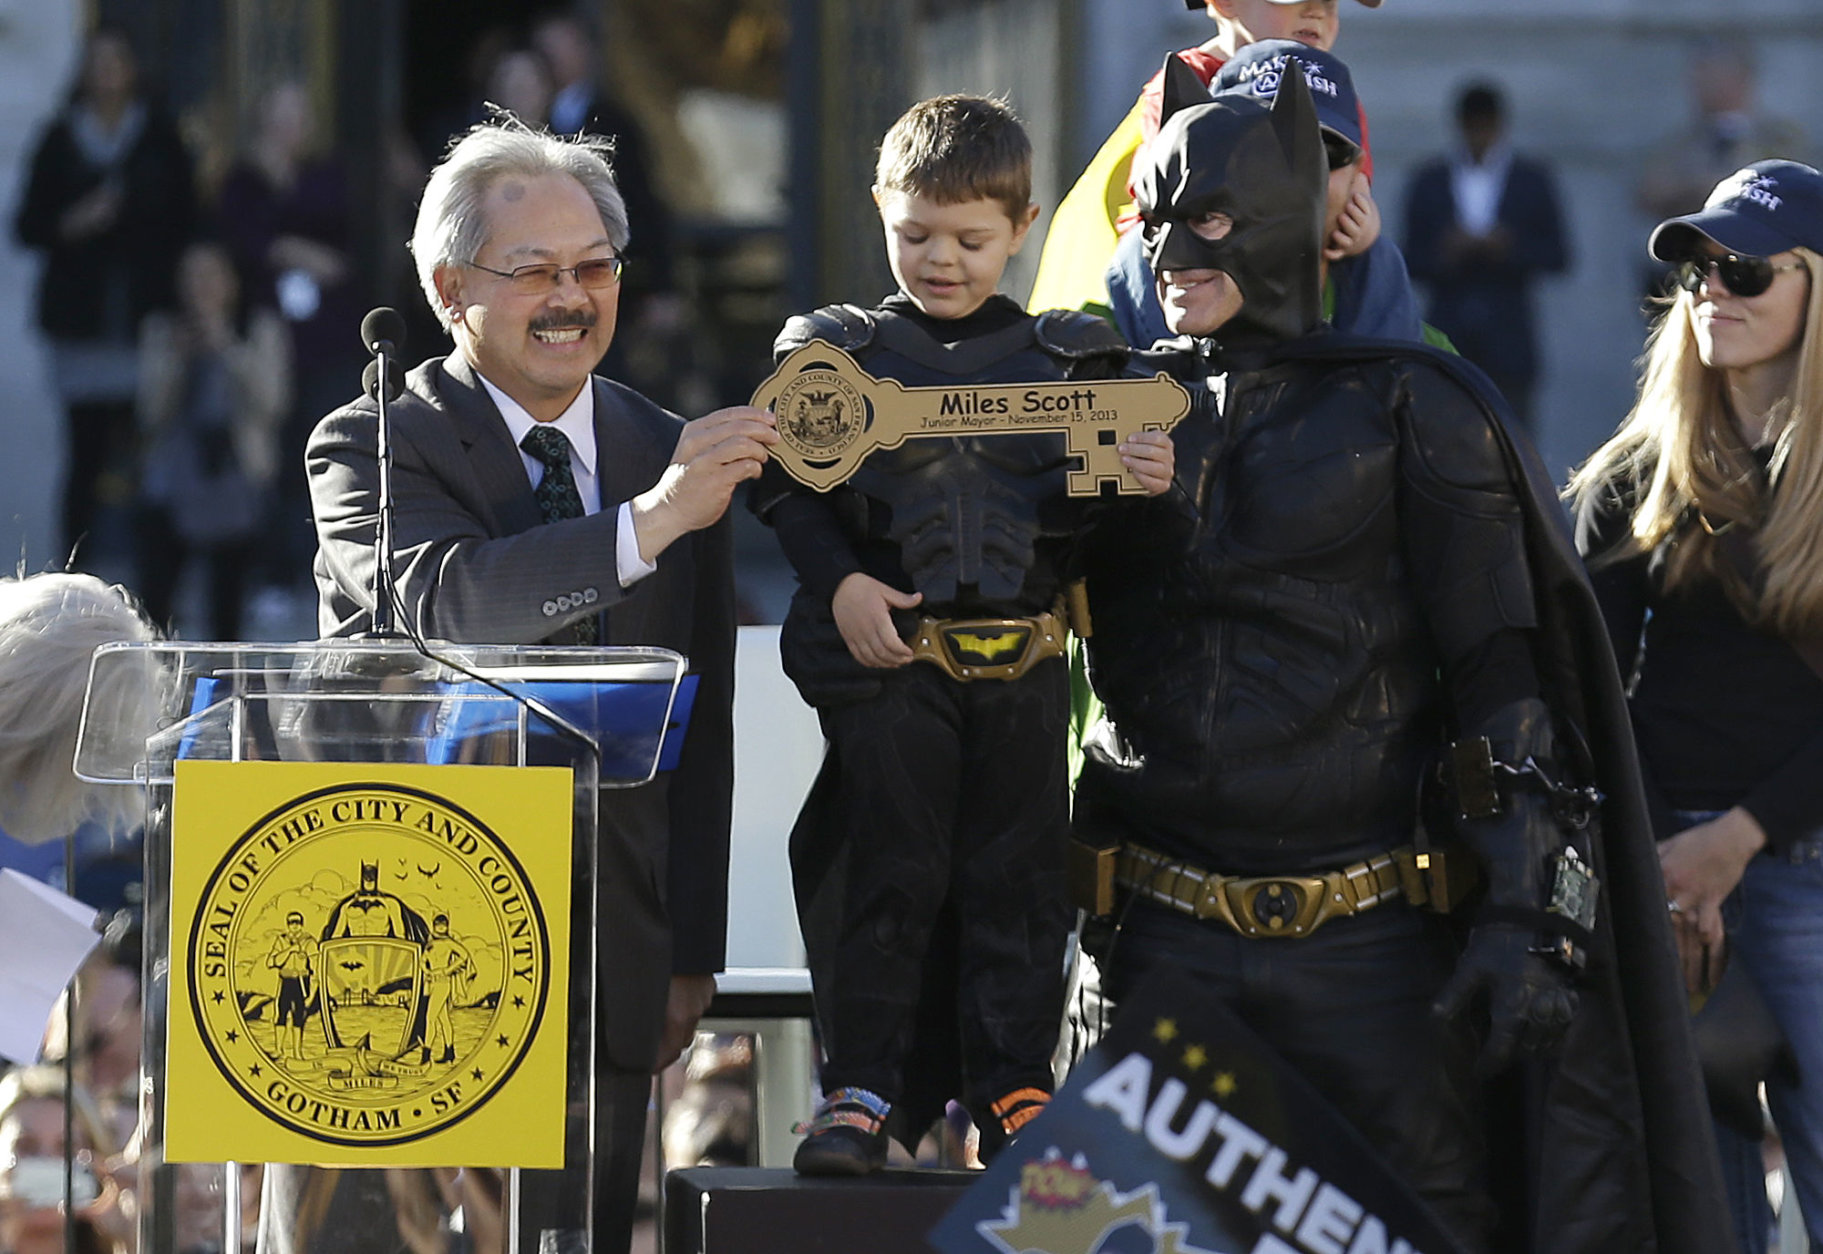 FILE - In this Nov. 15, 2013 file photo, Miles Scott, dressed as Batkid, stands next to Batman as he receives the key to the city from San Francisco Mayor Ed Lee, left, at a rally outside of City Hall in San Francisco. Mayor Lee, who oversaw a technology-driven economic boom in San Francisco that brought with it sky-high housing prices despite his lifelong commitment to economic equality, died suddenly early Tuesday, Dec. 12, 2017, at age 65. (AP Photo/Jeff Chiu, File)